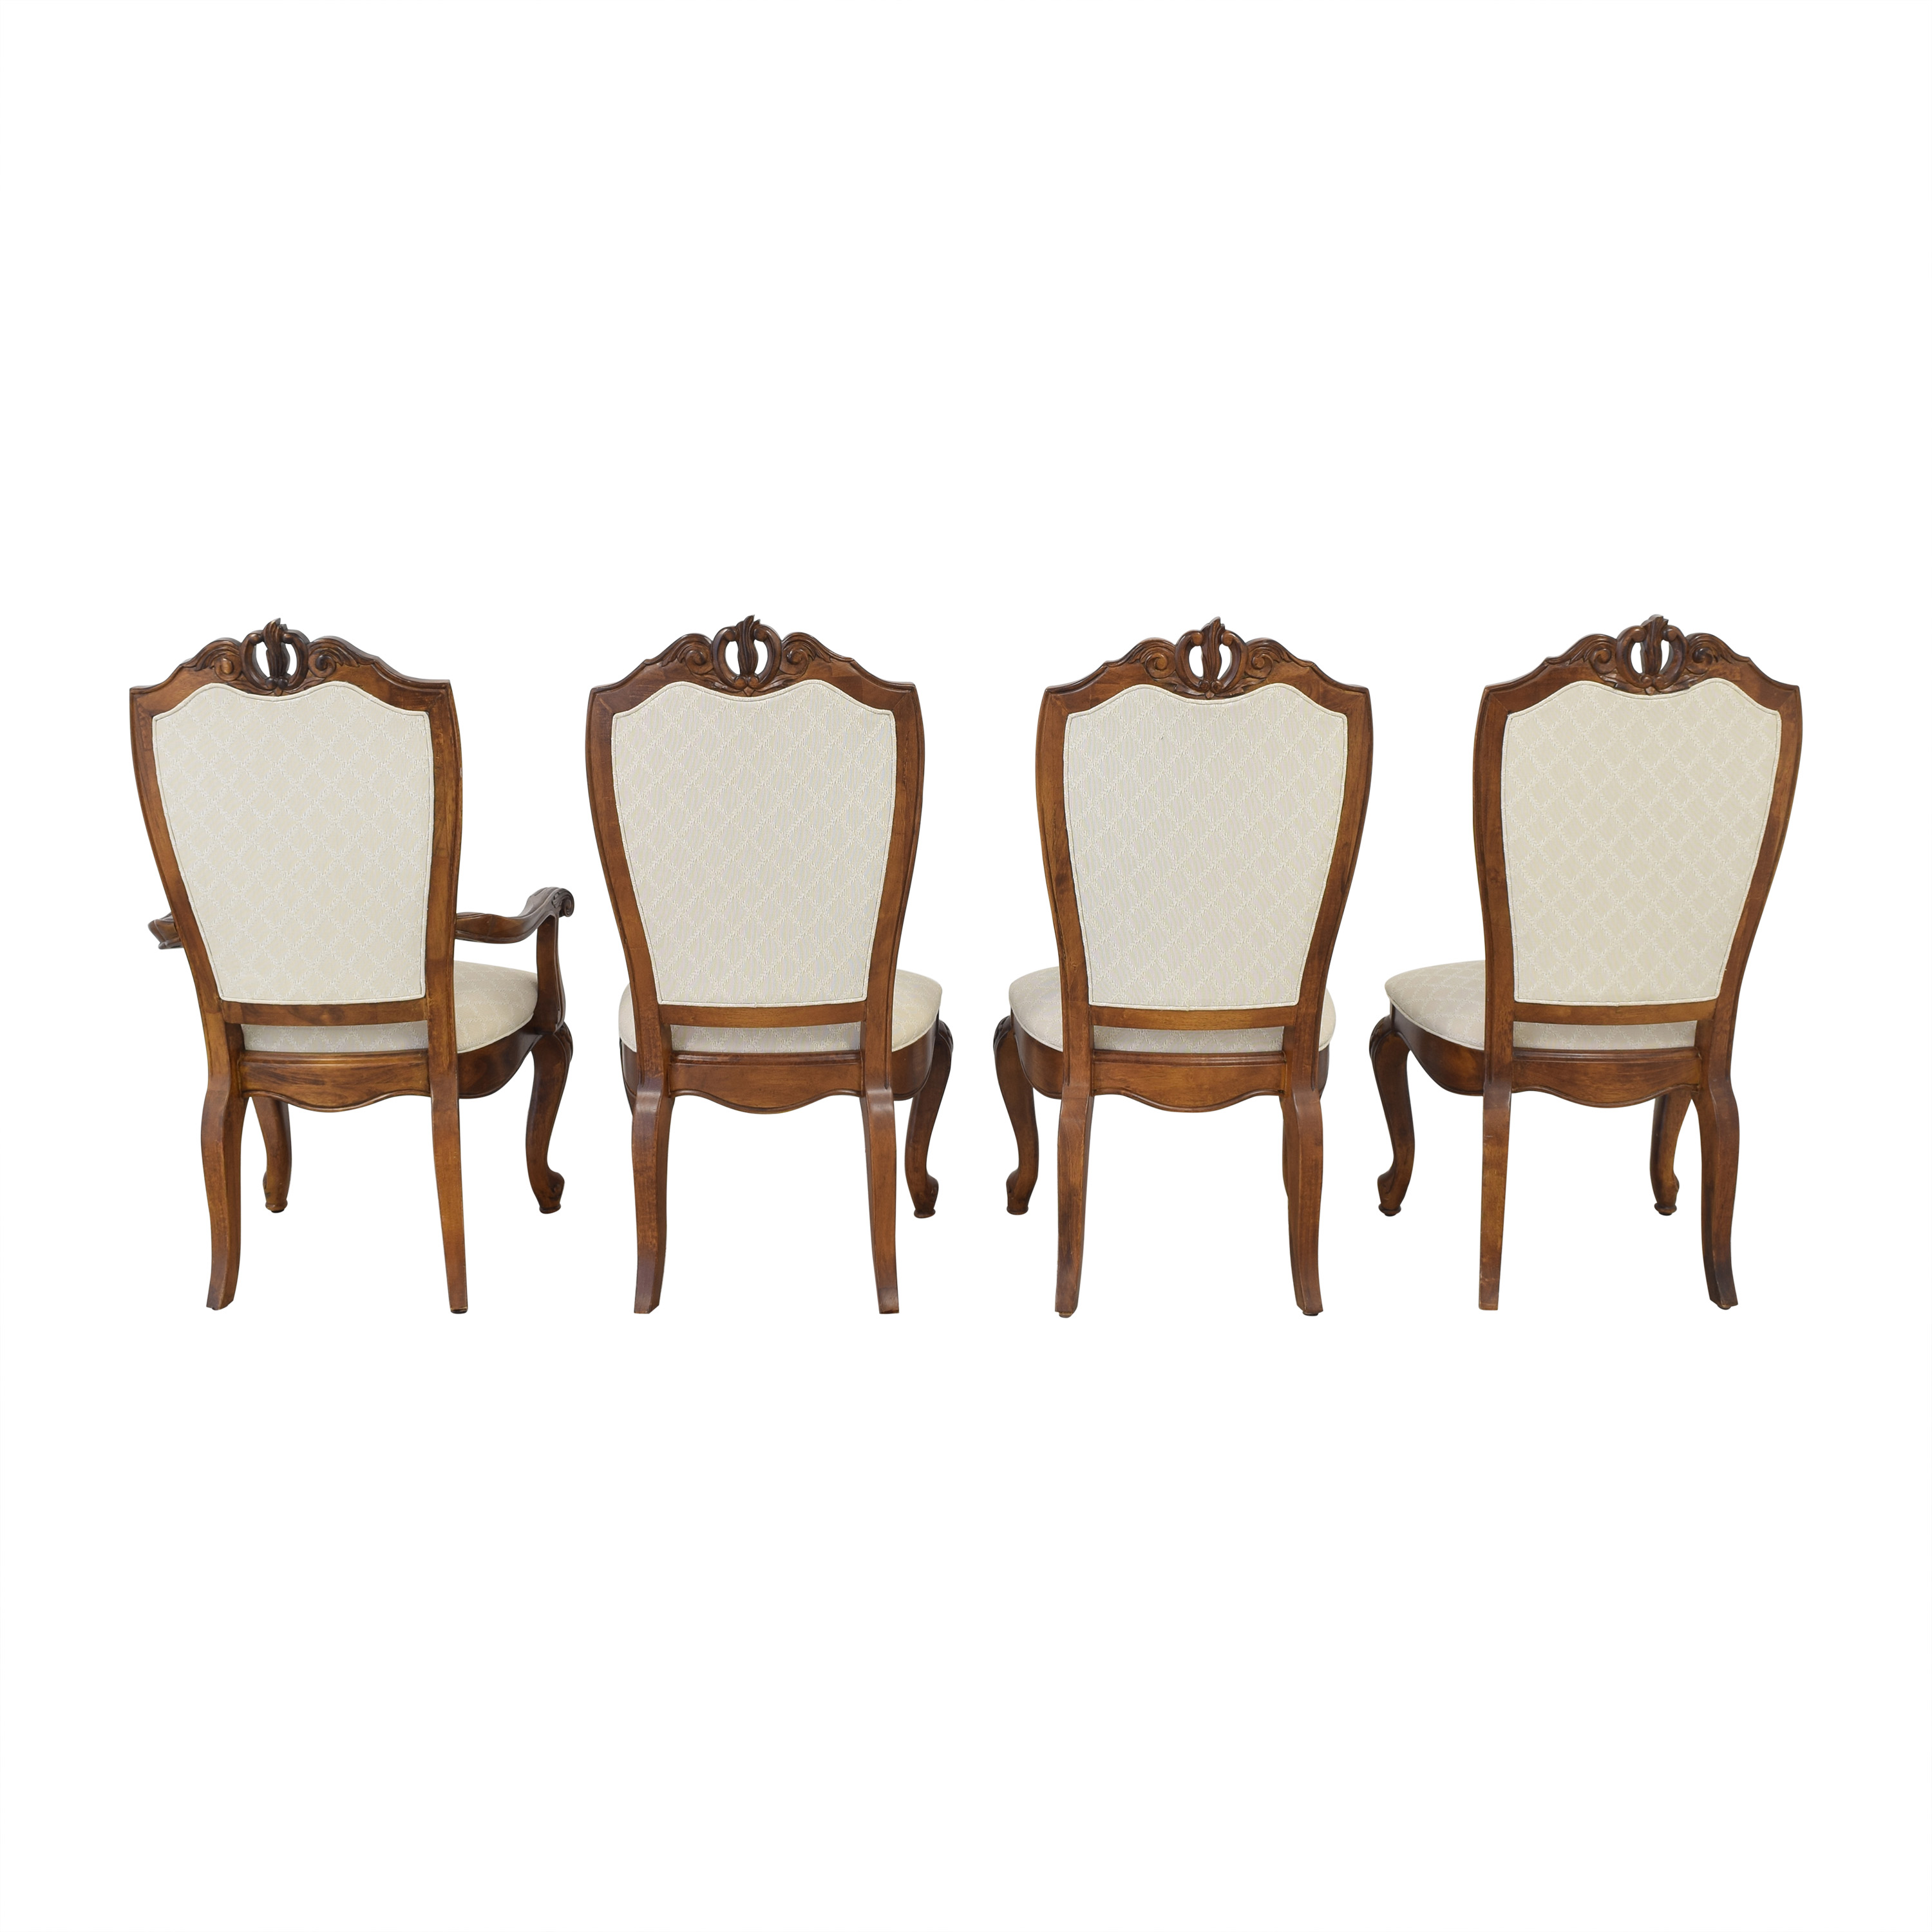 American Drew Bob Mackie for American Drew Dining Chairs Chairs